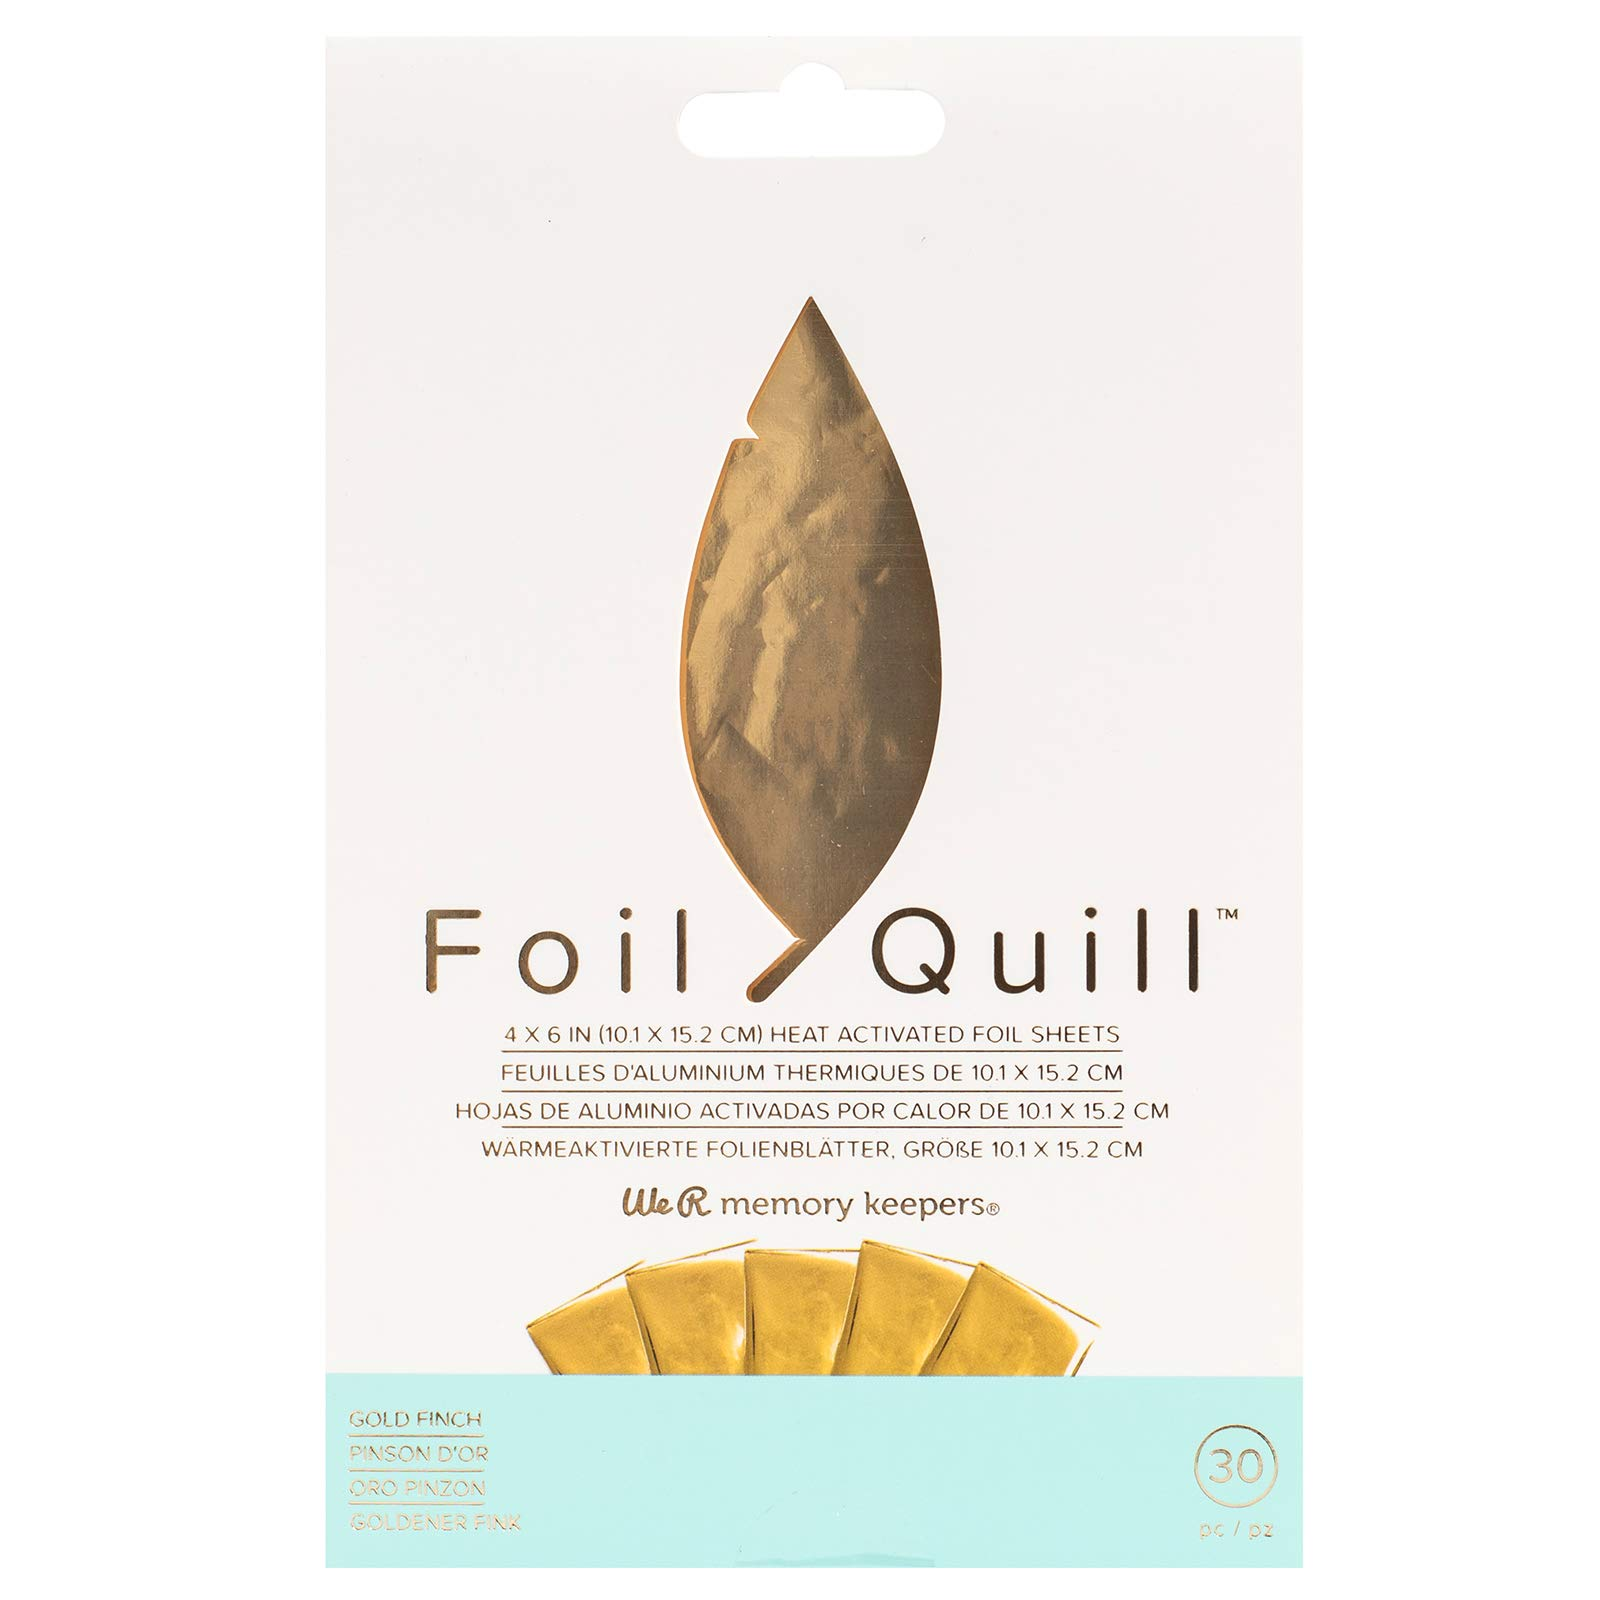 Foil Quill Foil Pack with 30 Foil Sheets - Gold Finch